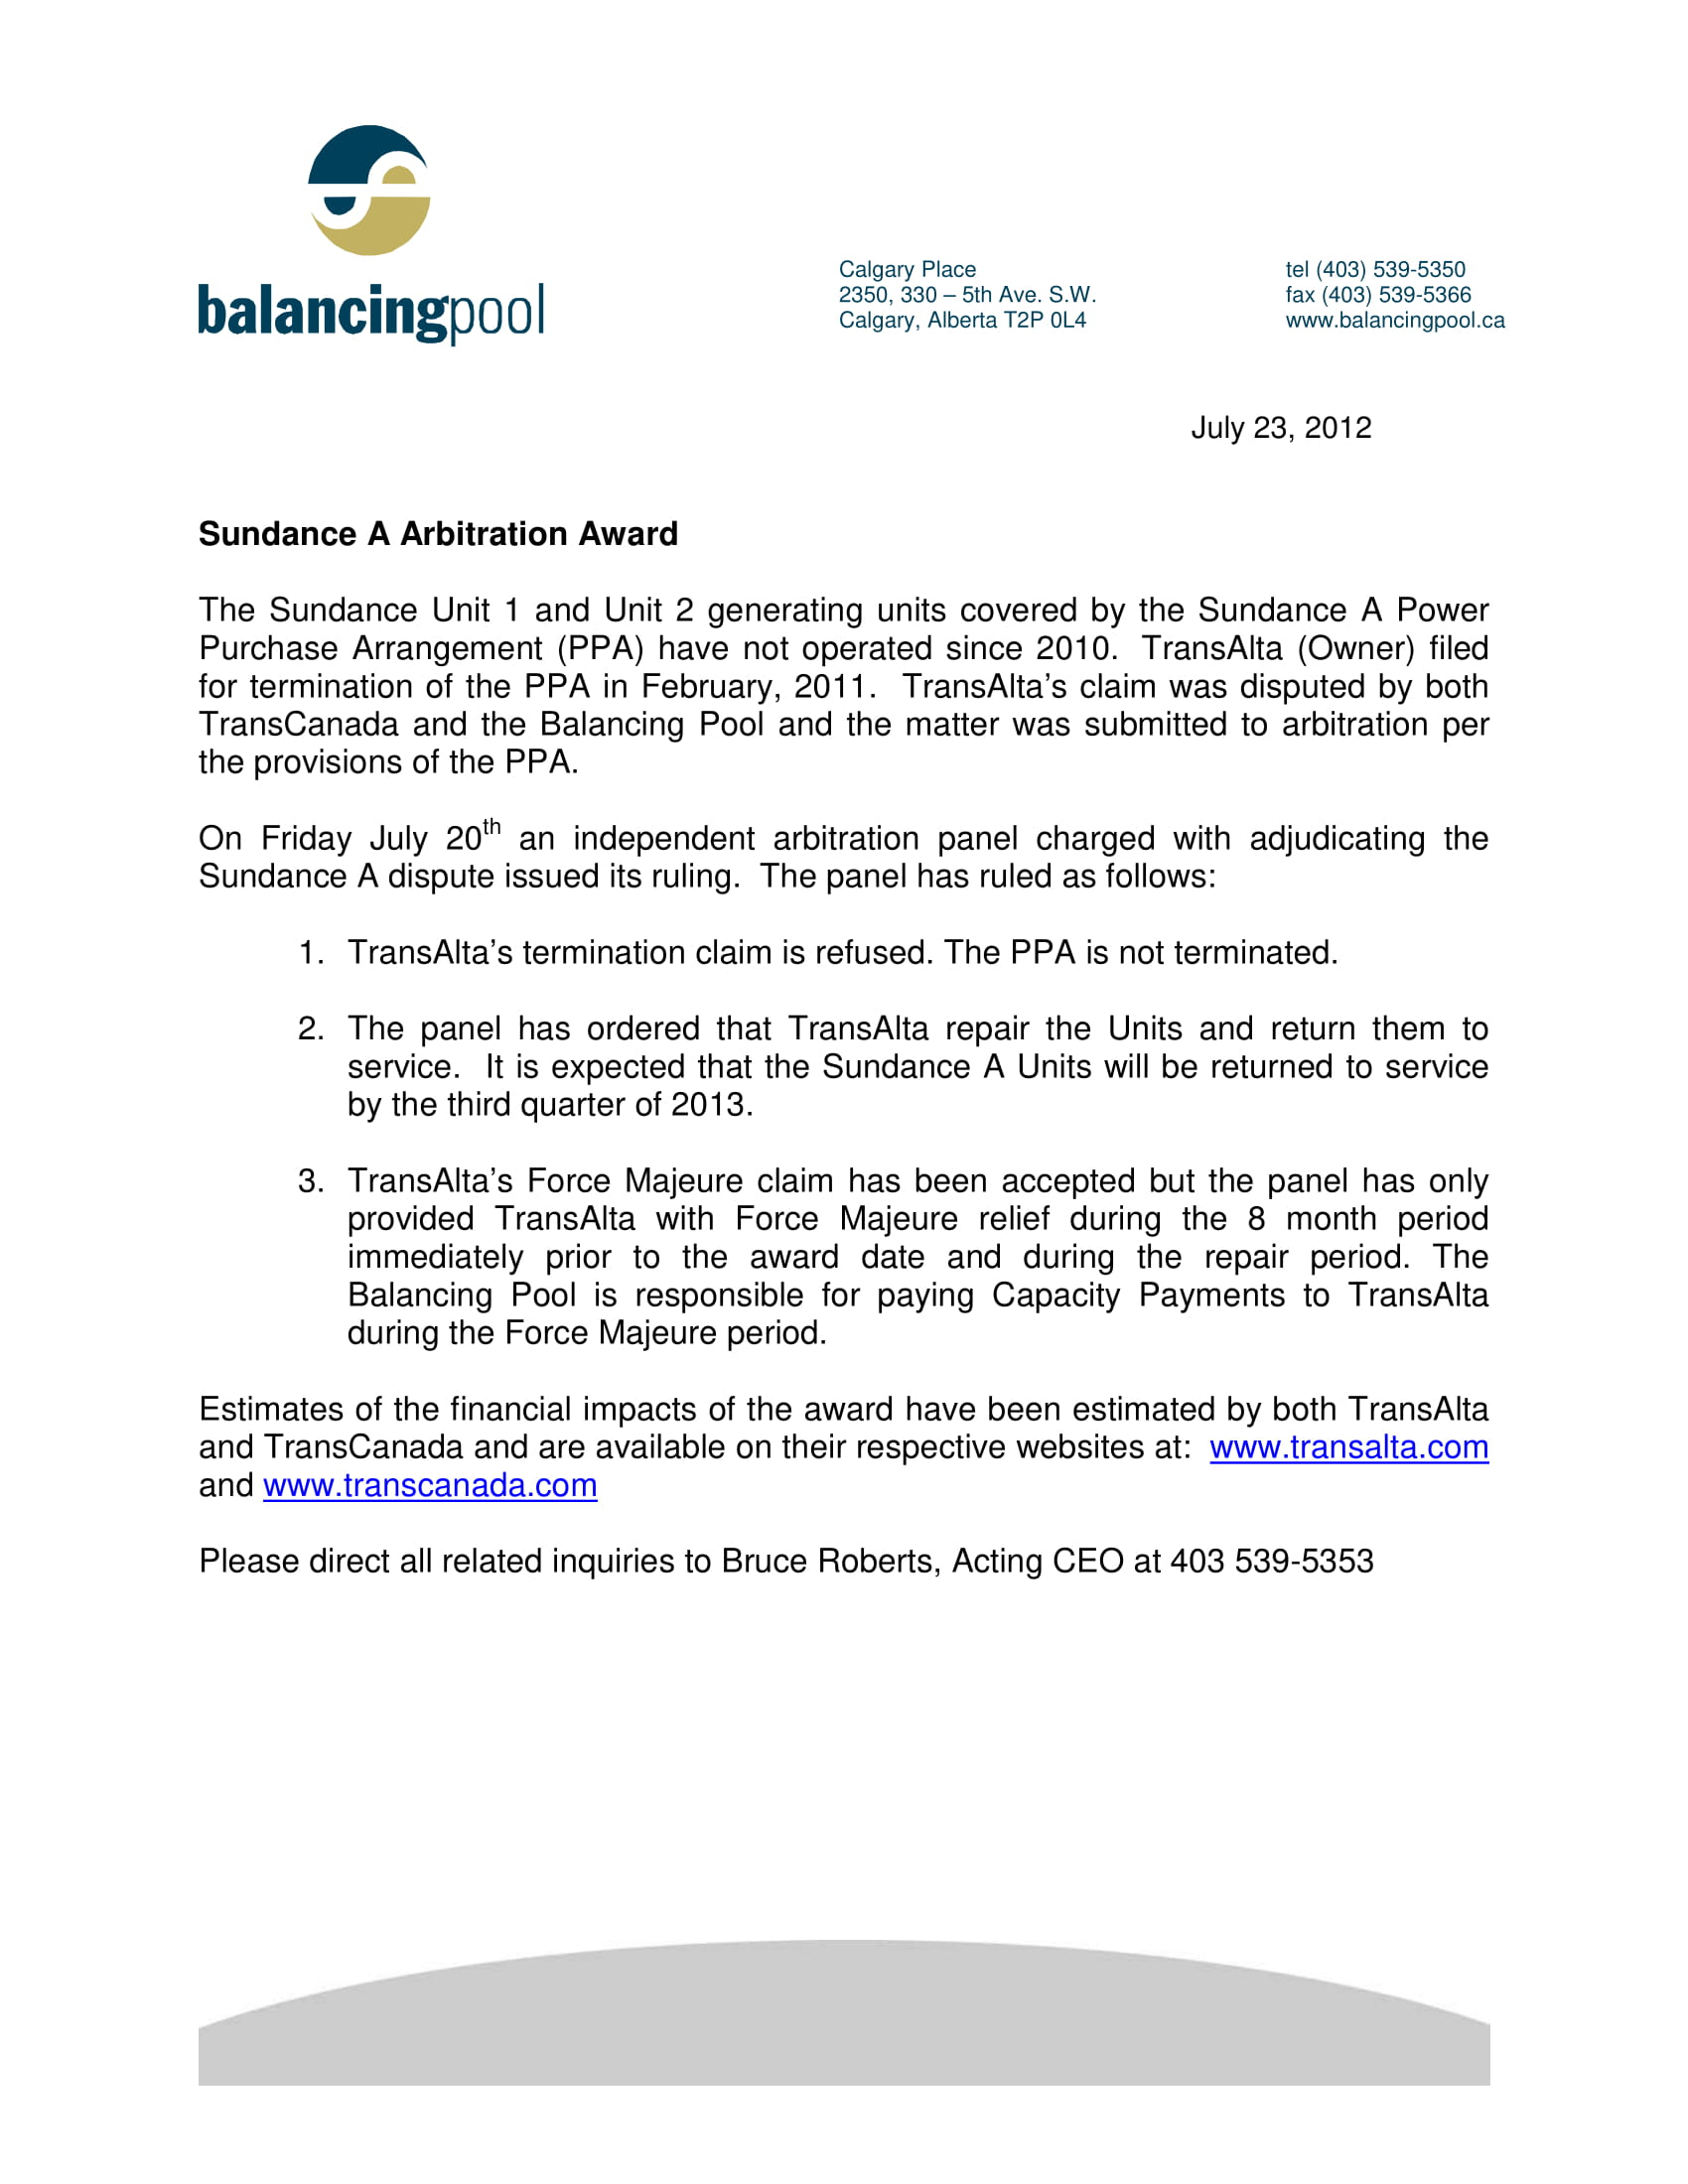 News Release 2012 Sundance Arbitration Award